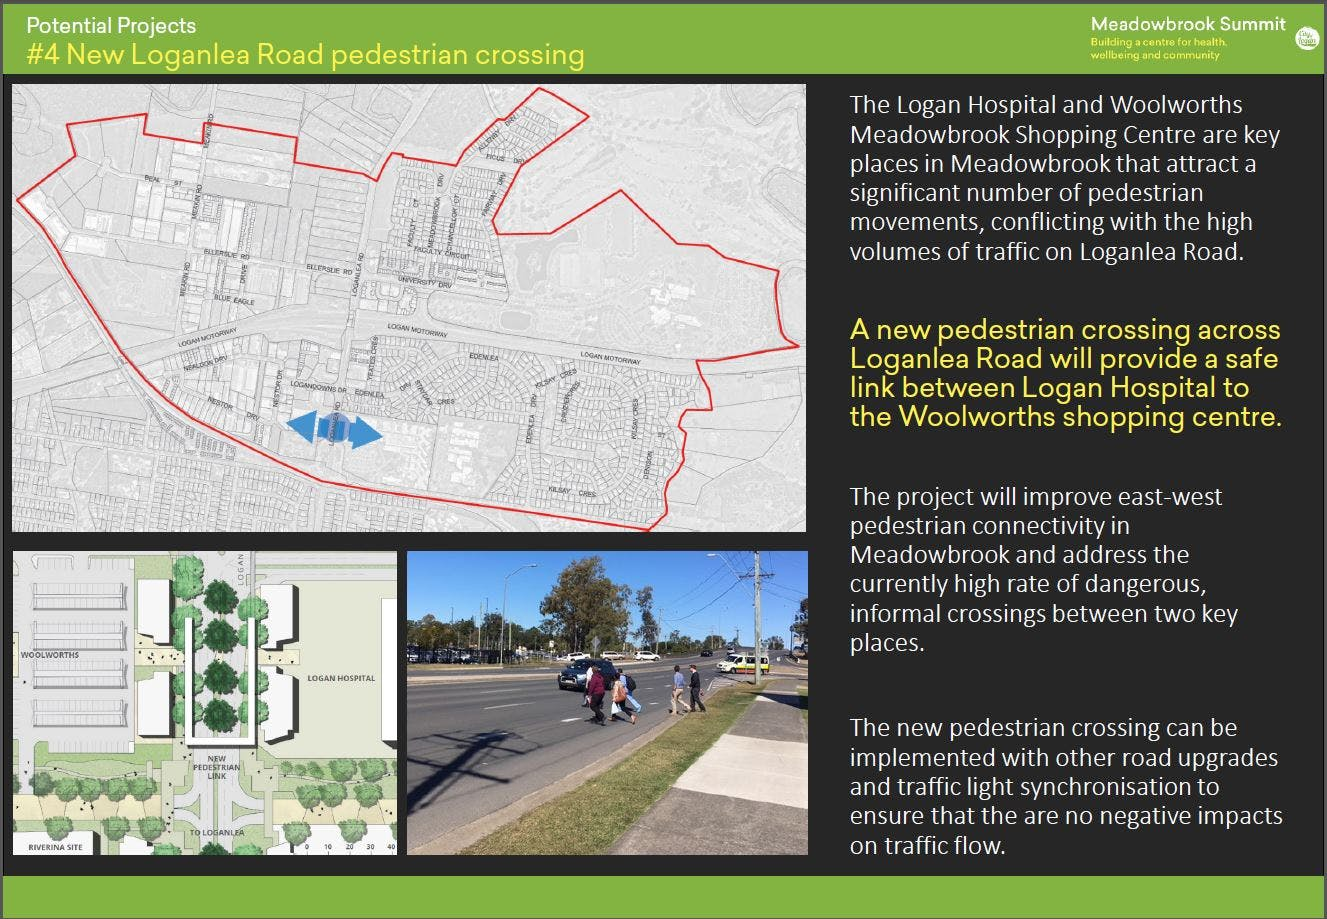 4. New Loganlea Rd pedestrian crossing